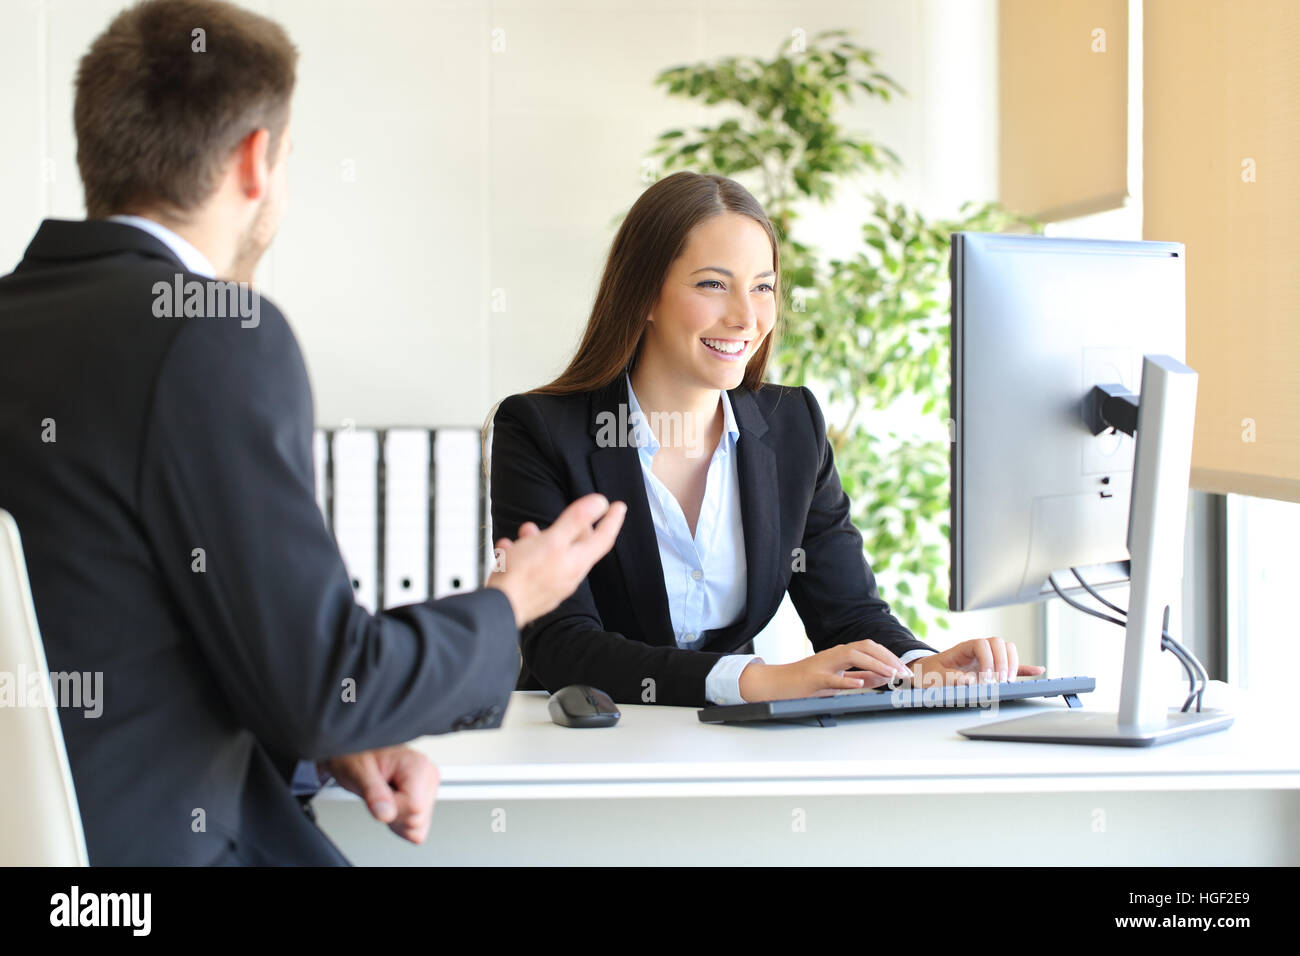 Agent attending to a client introducing data in a desktop computer at office - Stock Image